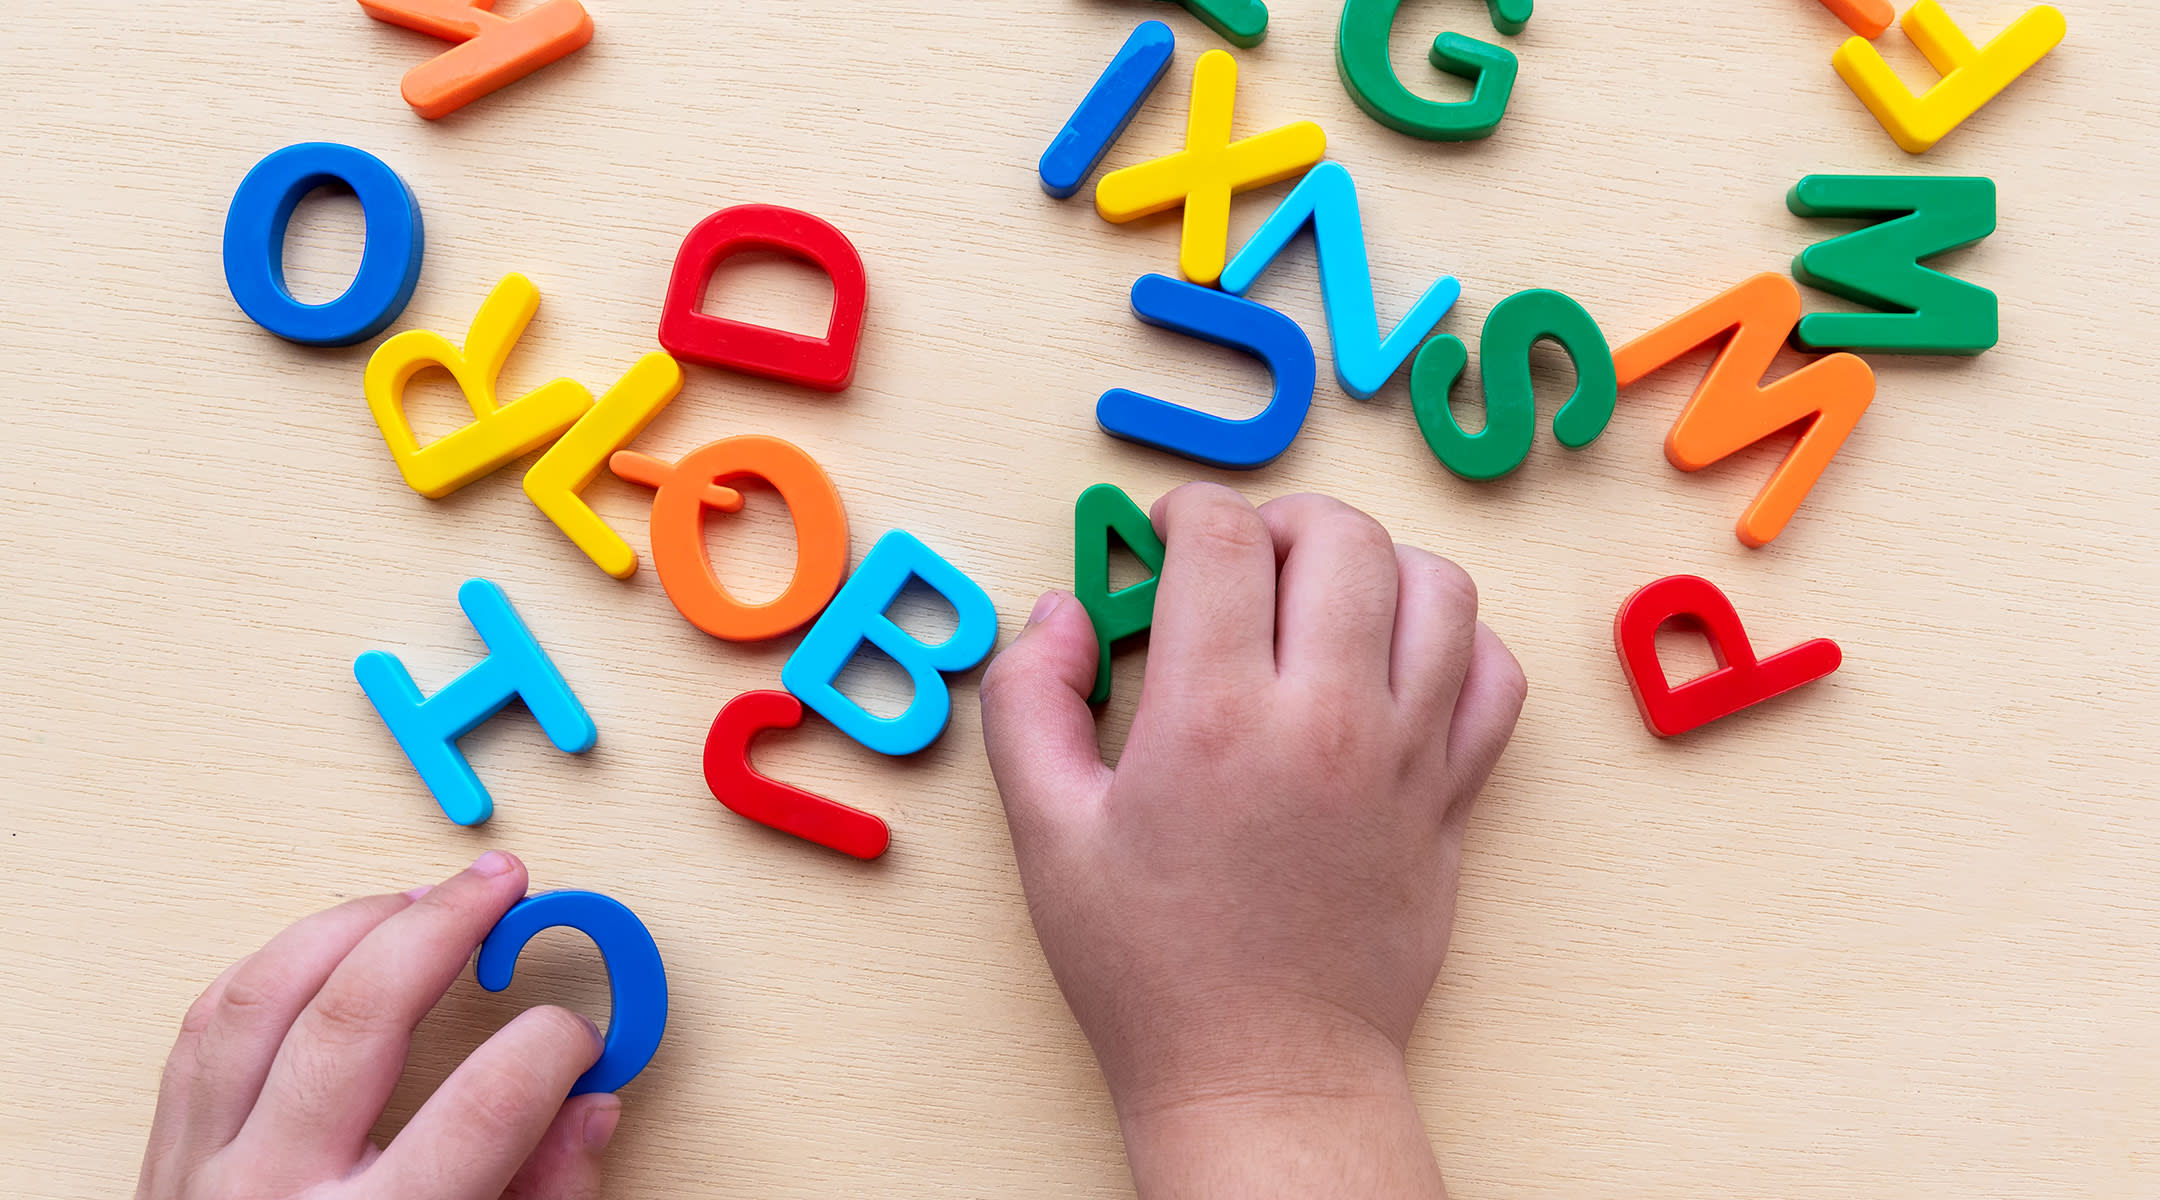 The Internet Is Outraged Over a New Version of the Alphabet Song